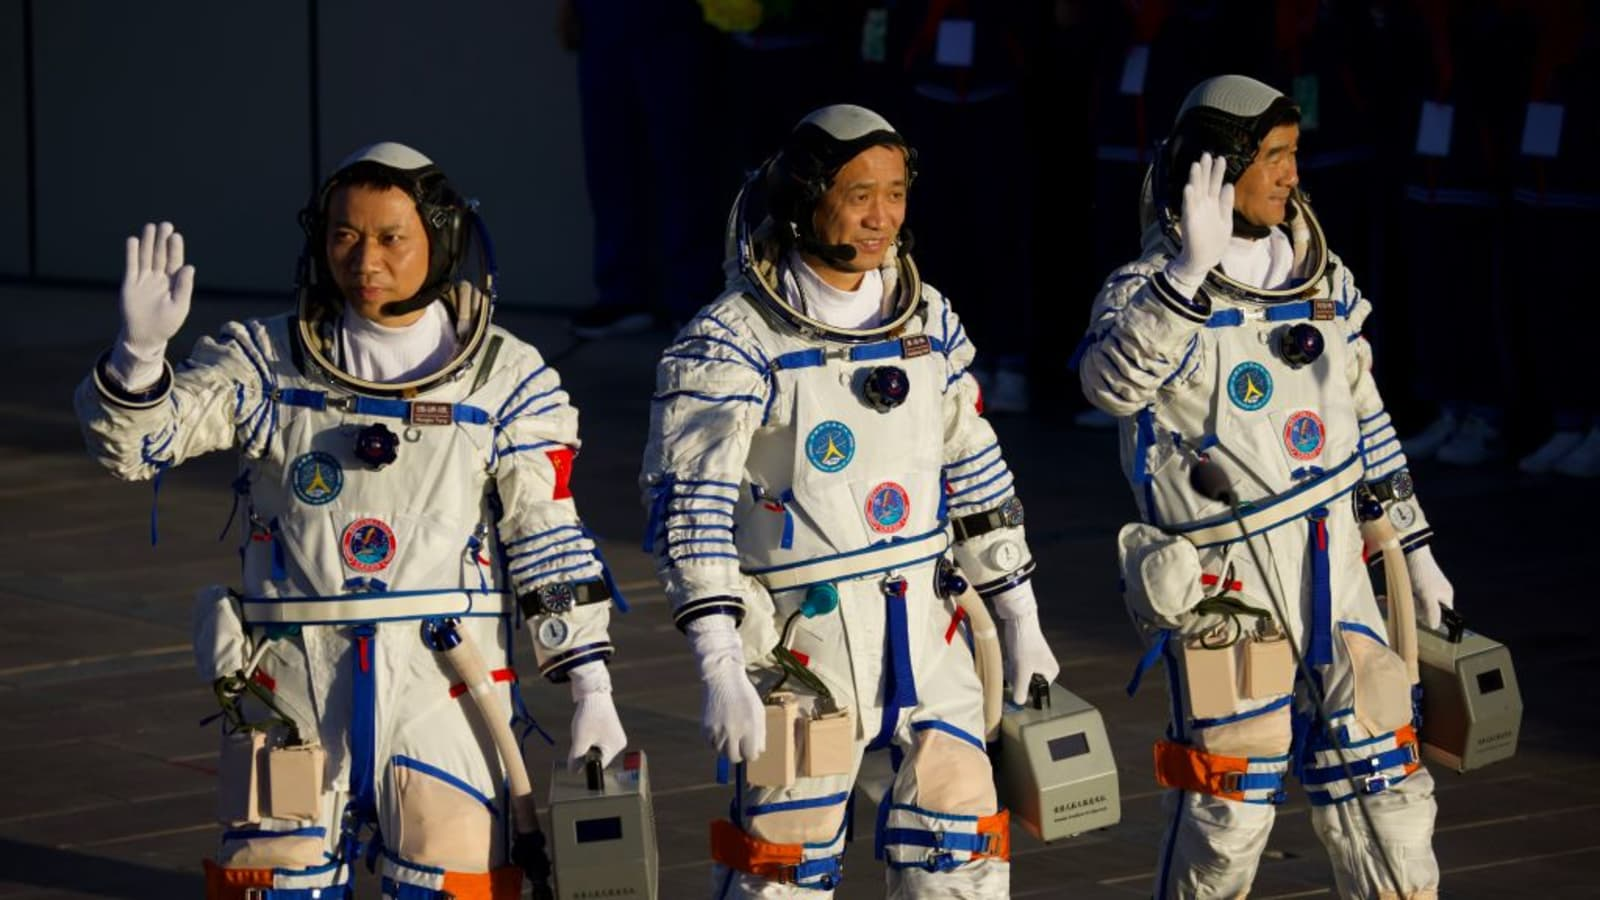 After spending 90 days in space, three Chinese astronauts returned to Earth